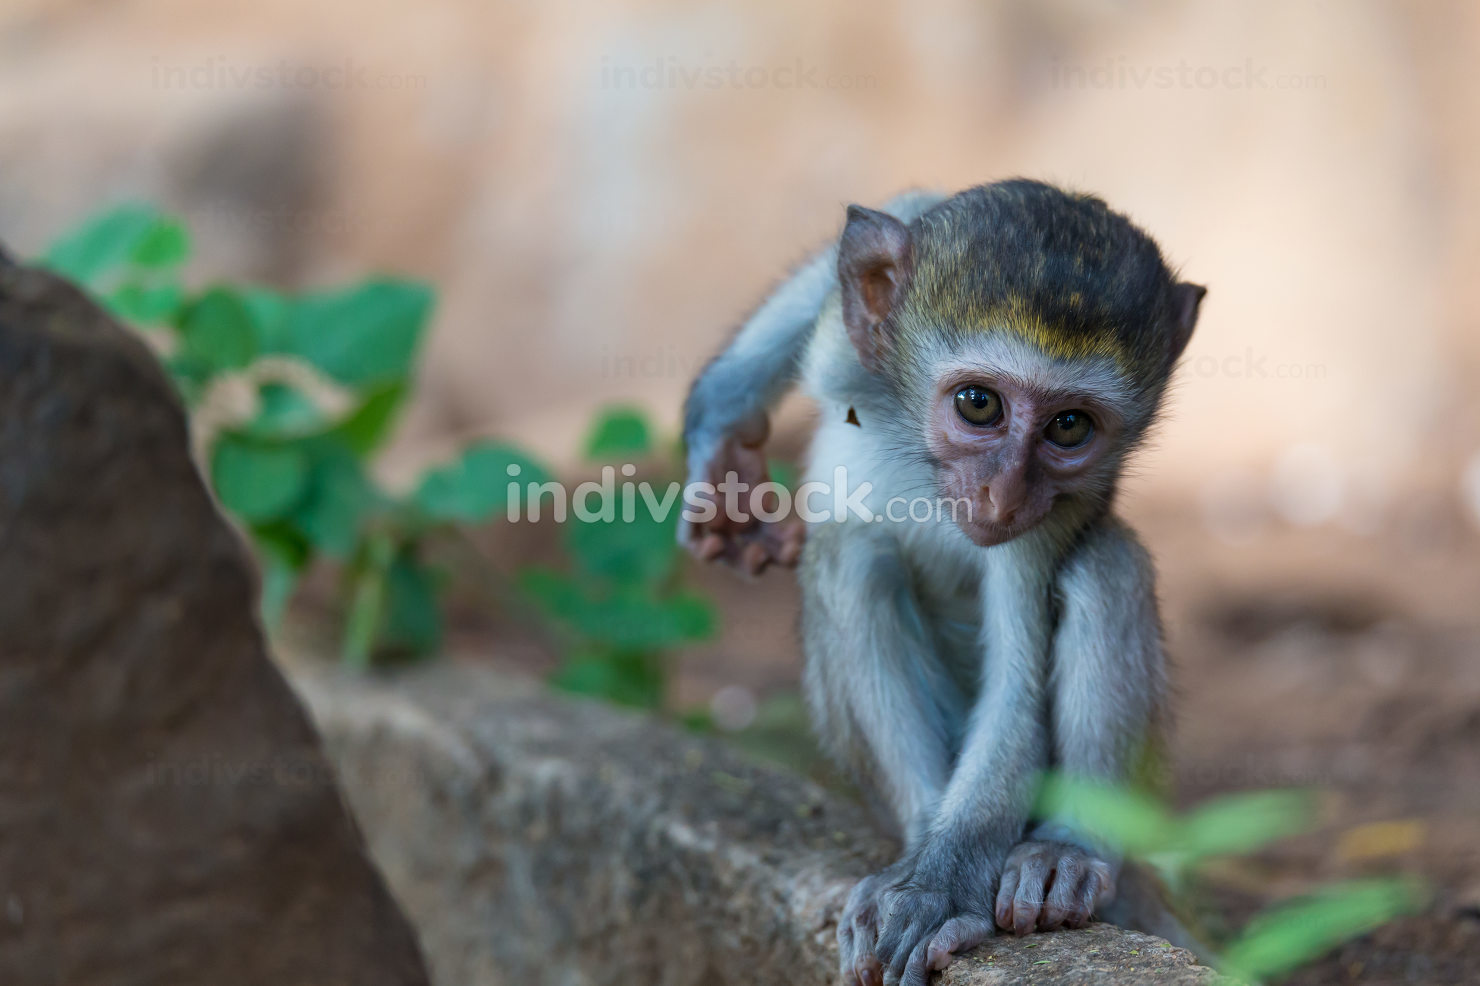 Thailand, A little funny monkey is playing on the floor or on the tree